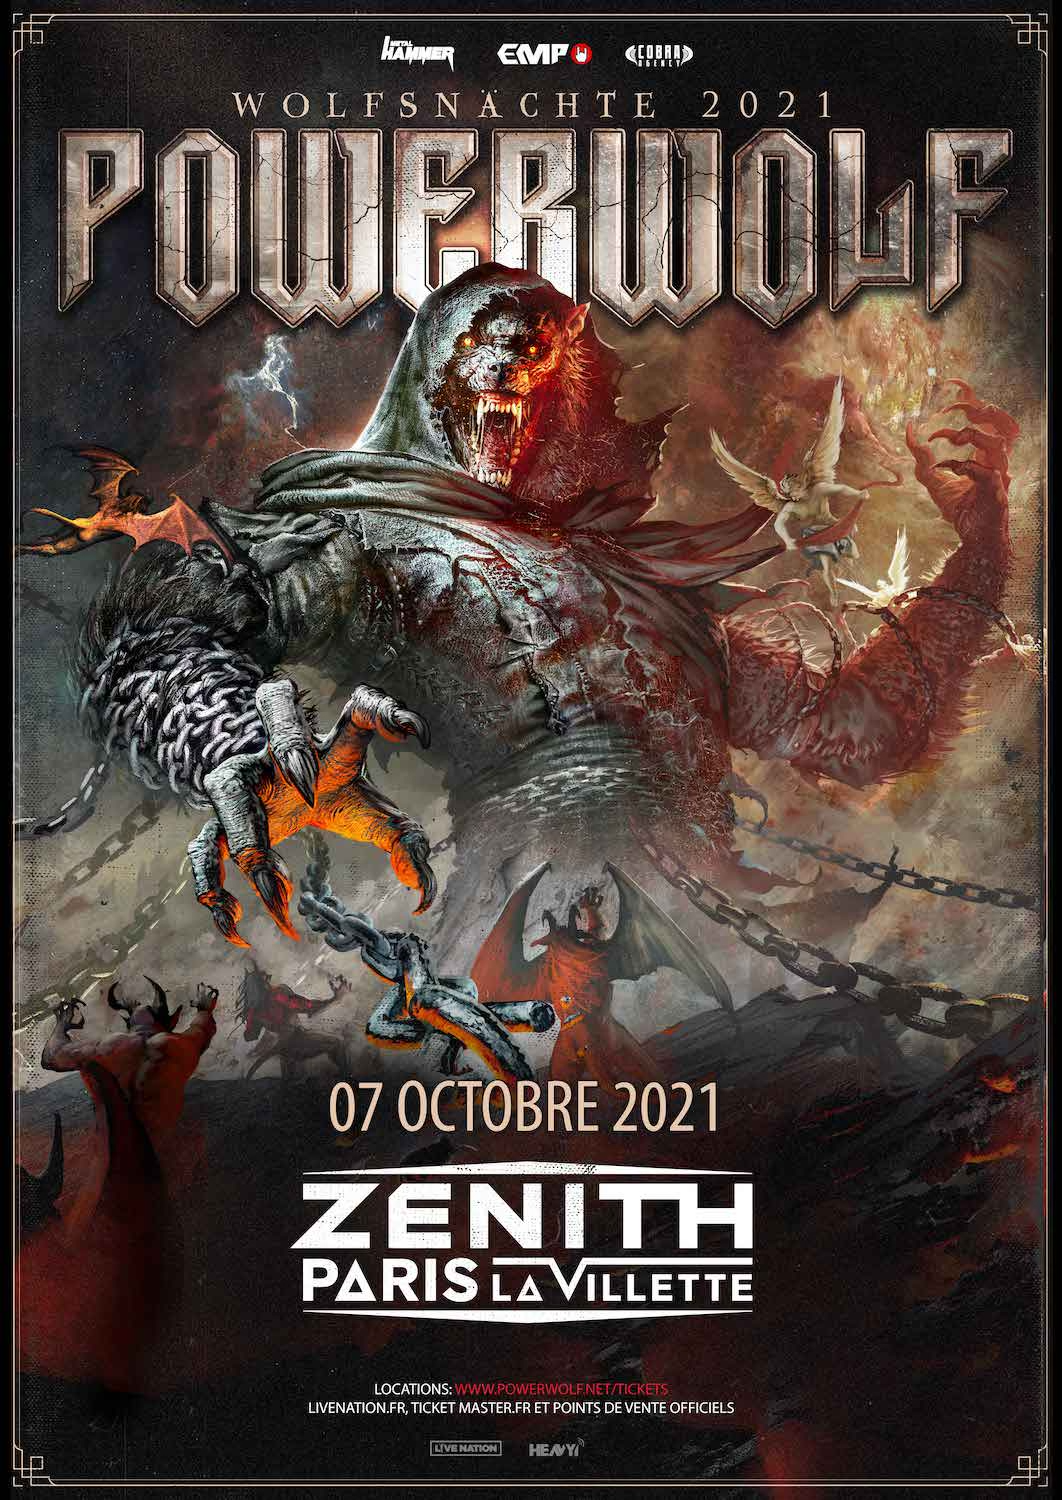 POWERWOLF - Zénith Paris la Villette, 7 octobre 2021